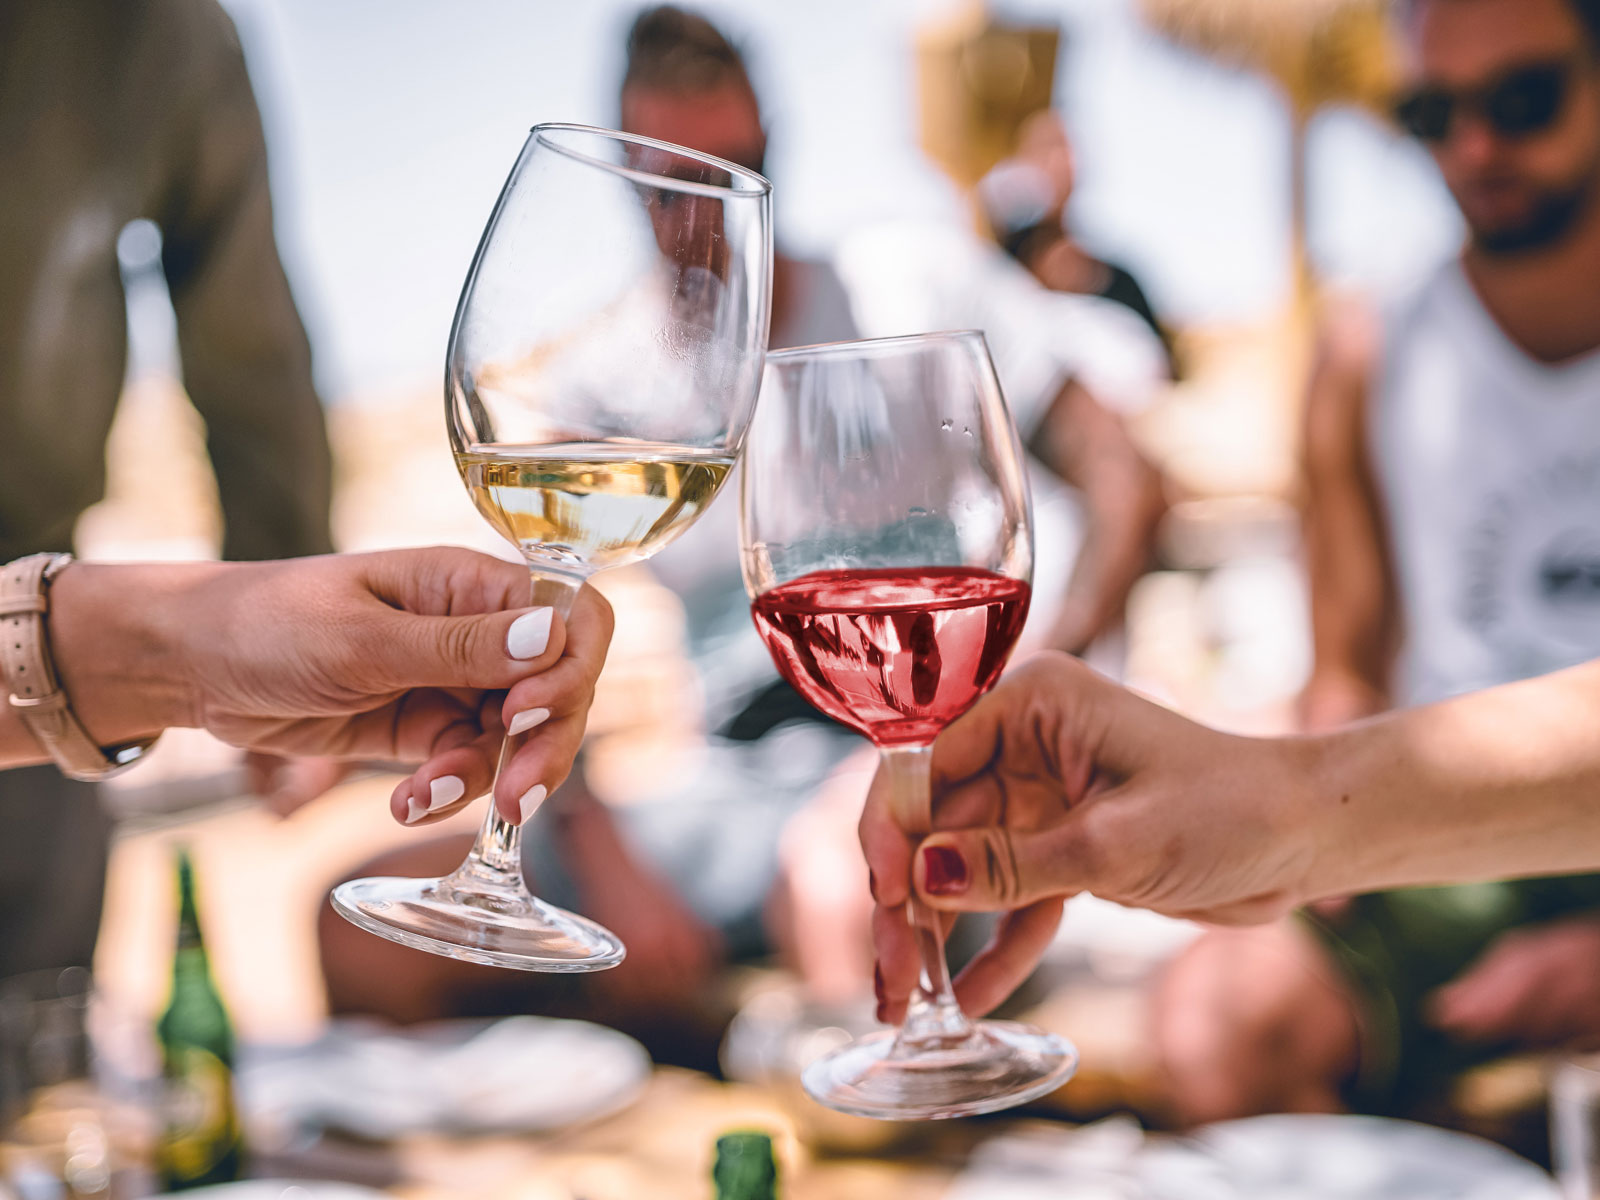 What Your Preference for Red or White Wine Says About Your Personality, According to a New Poll